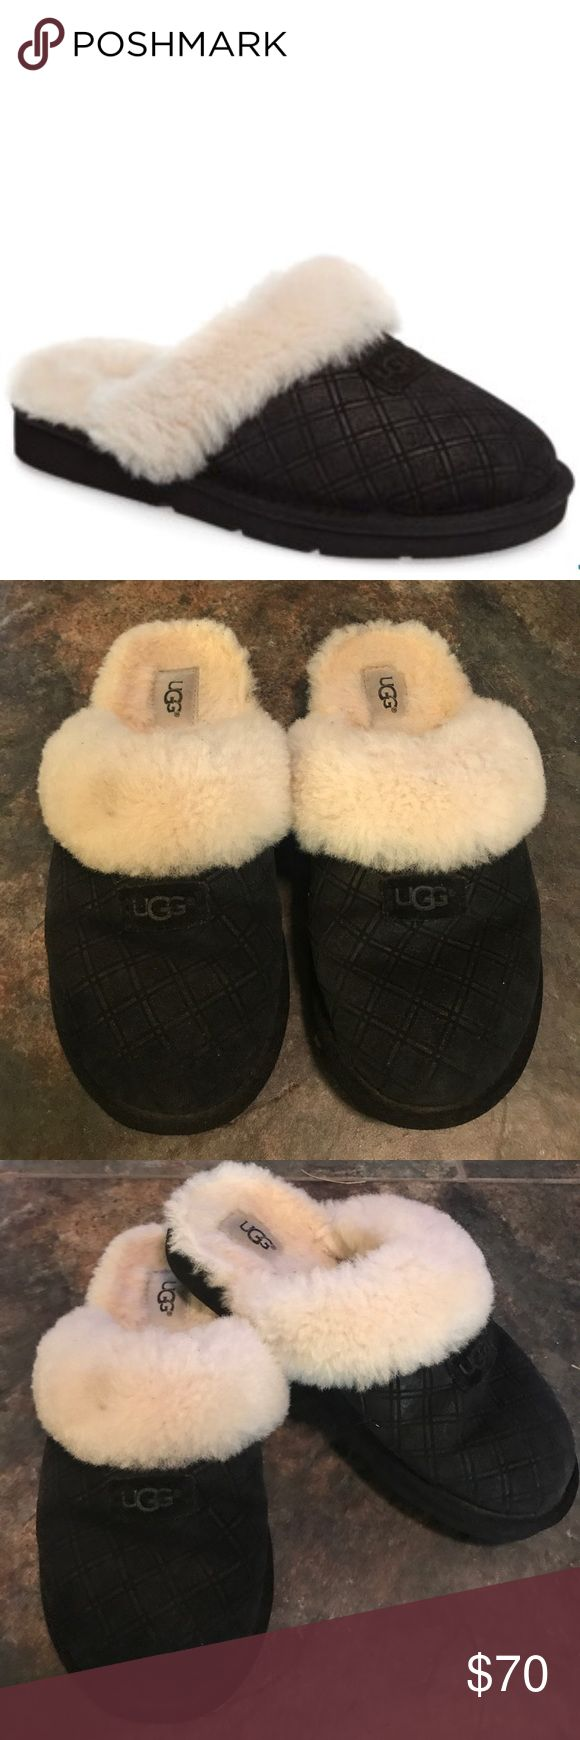 Ugg Australia Slippers Good Condition  Minor signs of wear shown on insole and bottoms. There is one dirt spot on the fuzzy part of the right shoe. Can easily be spot cleaned. A cozy sheepskin collar defines a comfy slipper cut from diamond-embossed suede and lined with UGGpure(TM), a textile made from pure wool but crafted to feel and wear like genuine shearling.  Sizing: Whole sizes only; for 1/2 sizes, order next size down. - Round toe - Diamond embossed - Genuine sheepskin collar…